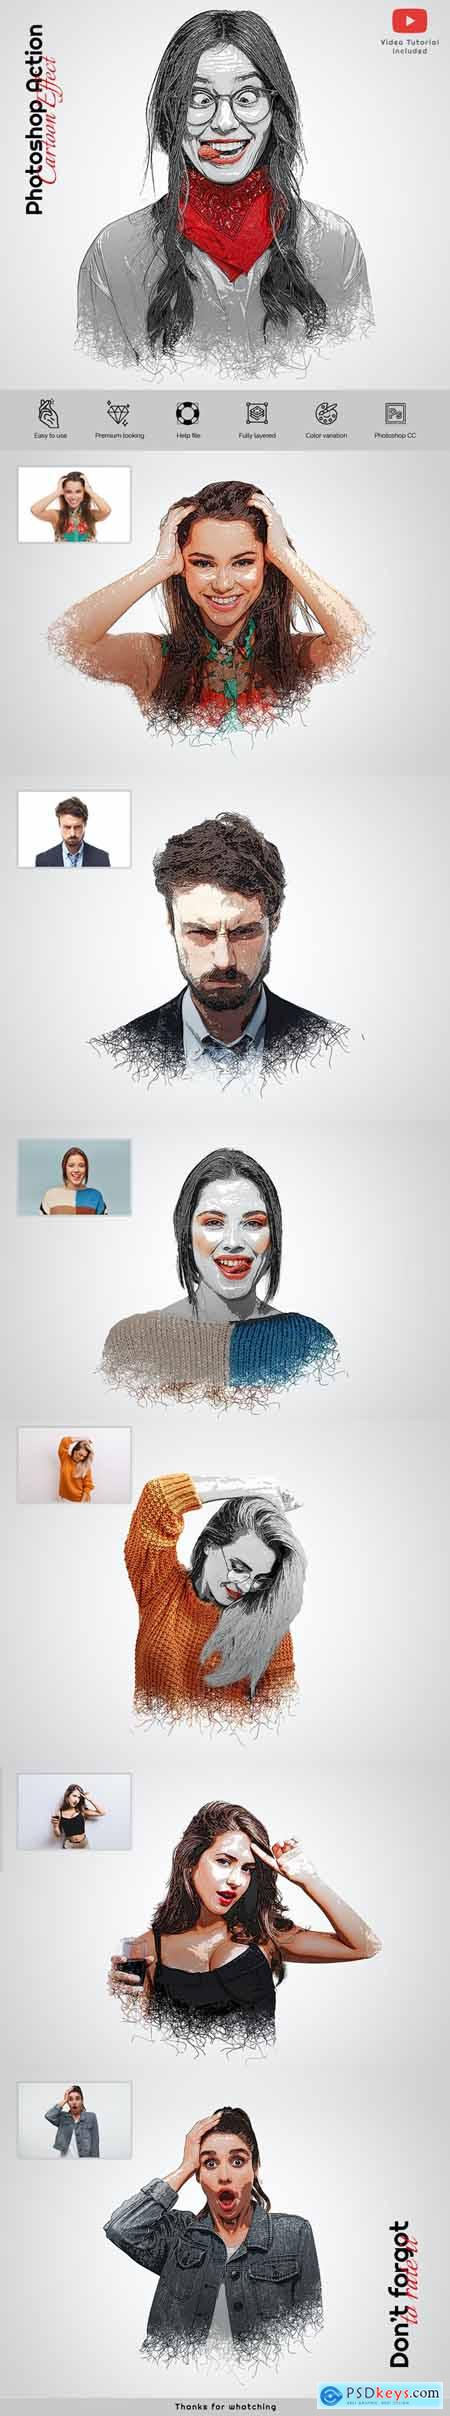 Cartoon Effects Photoshop Action 29751253